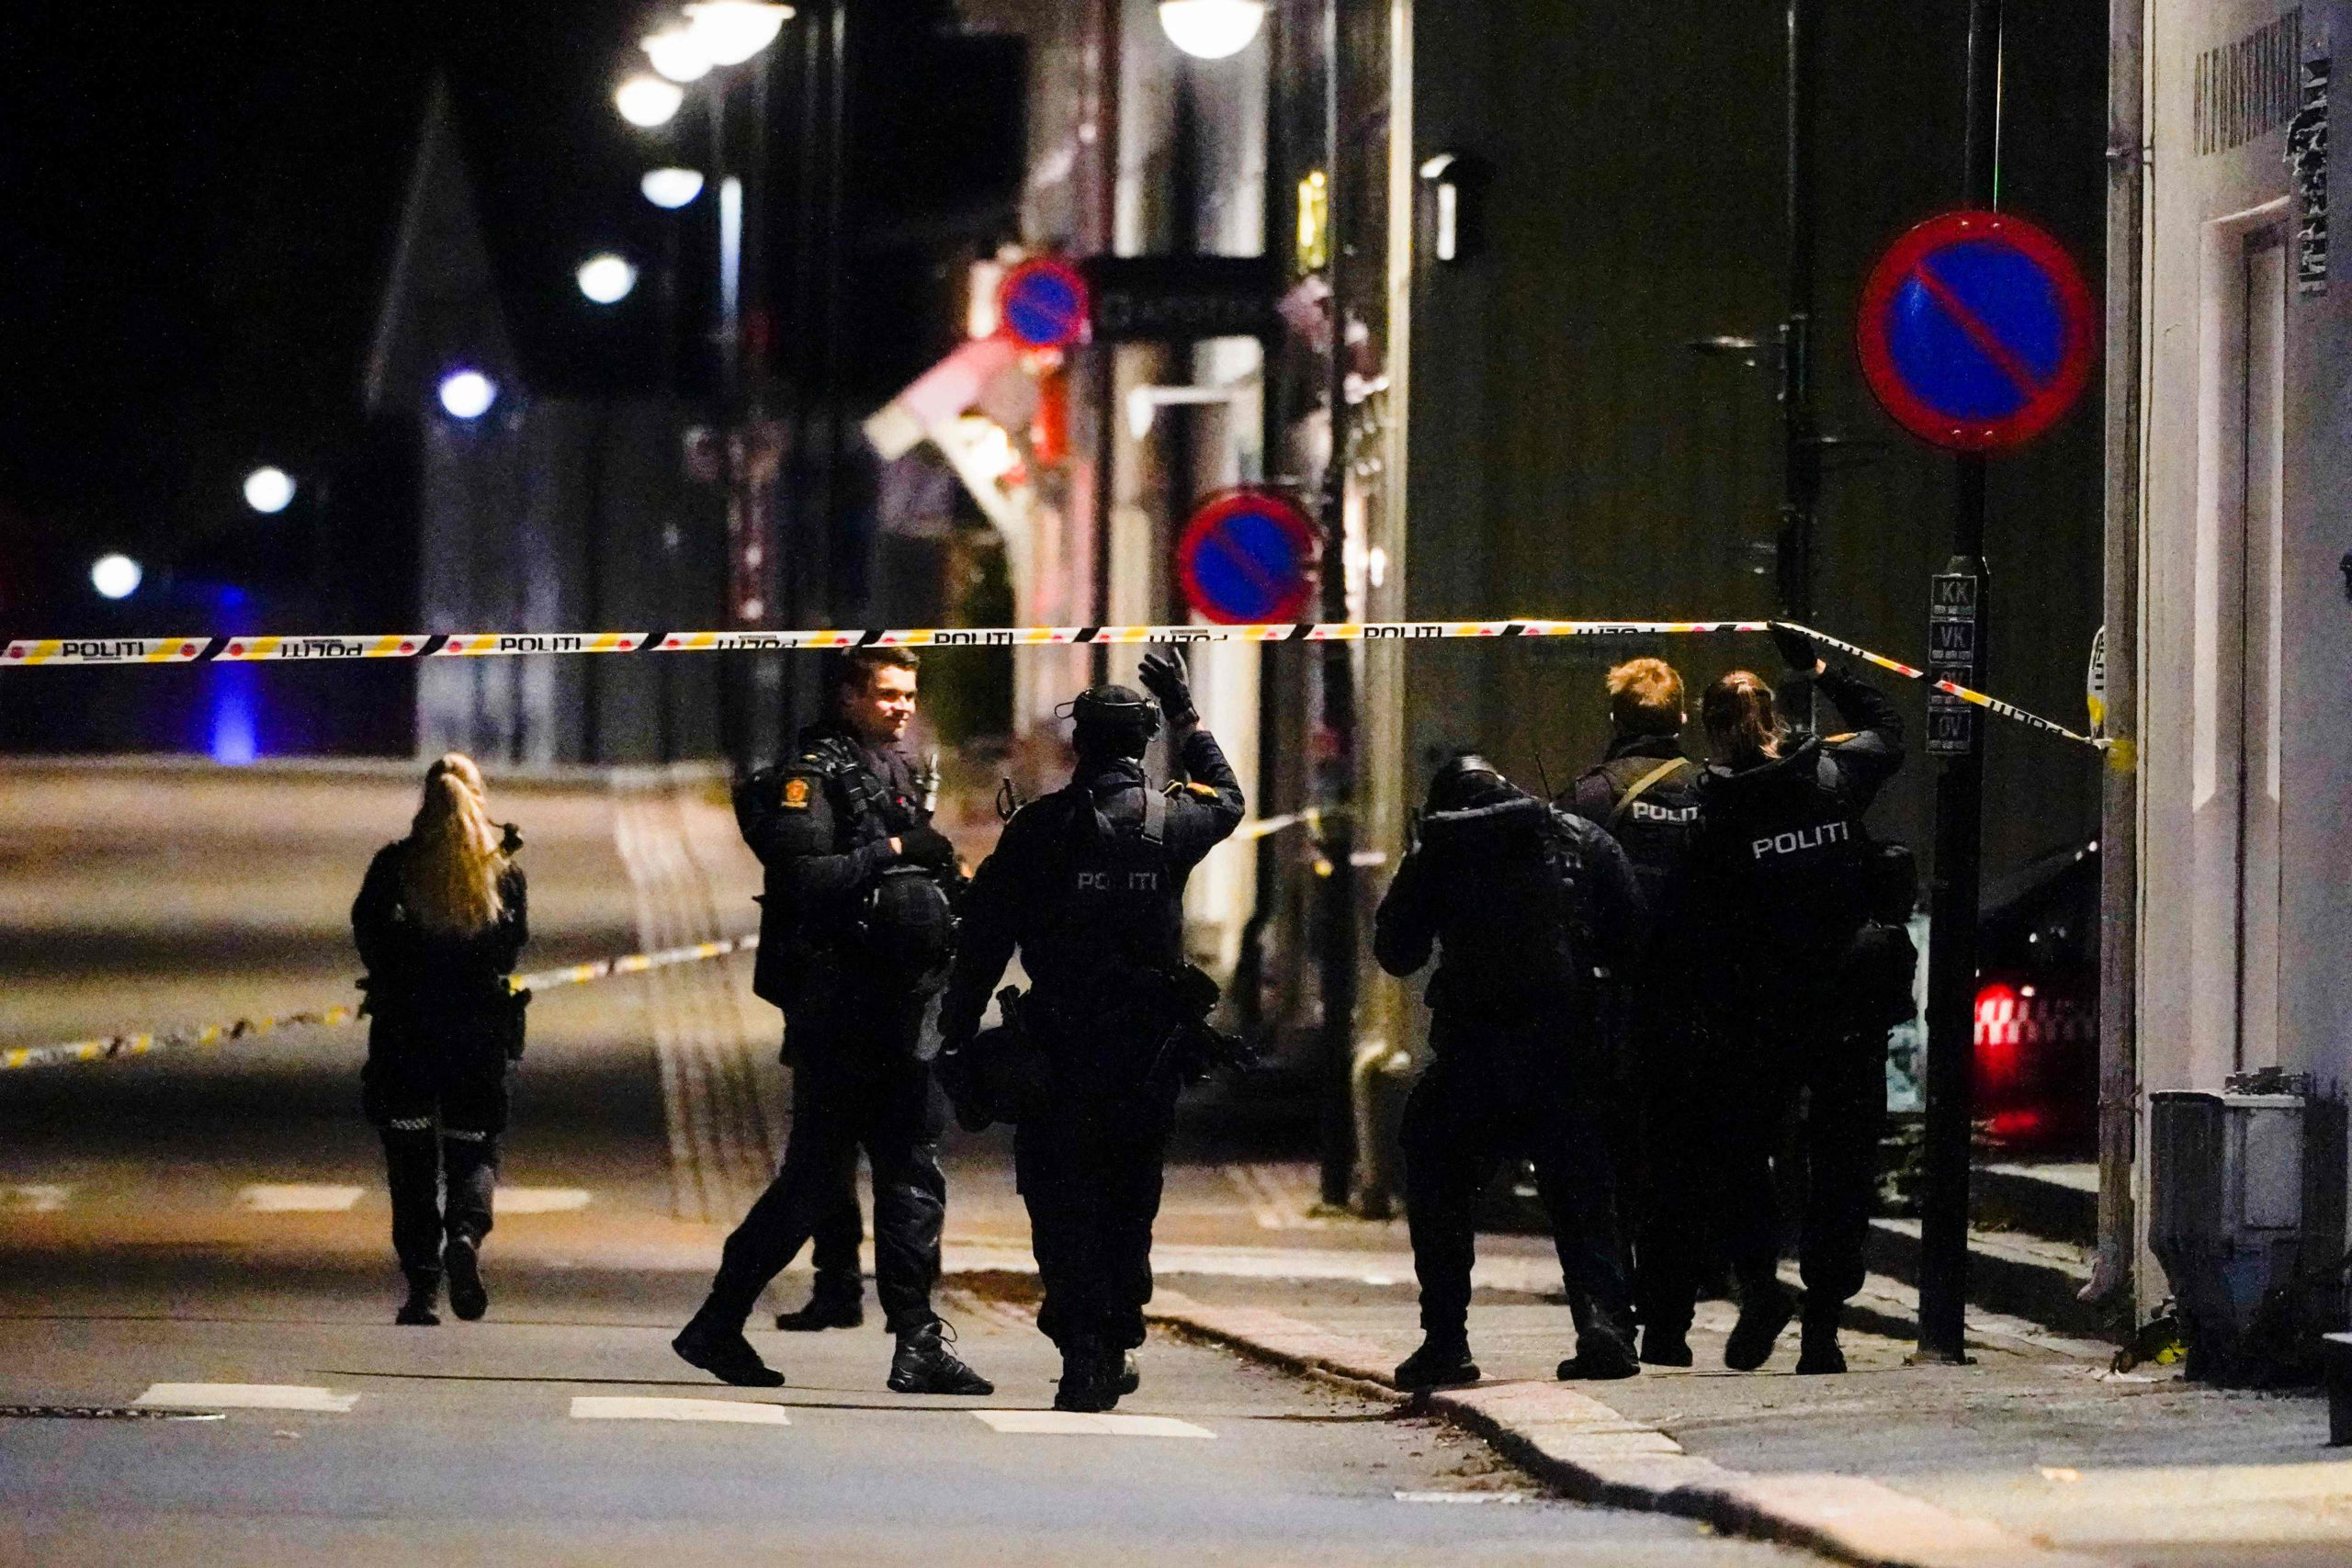 Kongsberg attack: Several killed in bow and arrow attack in Norway |  International